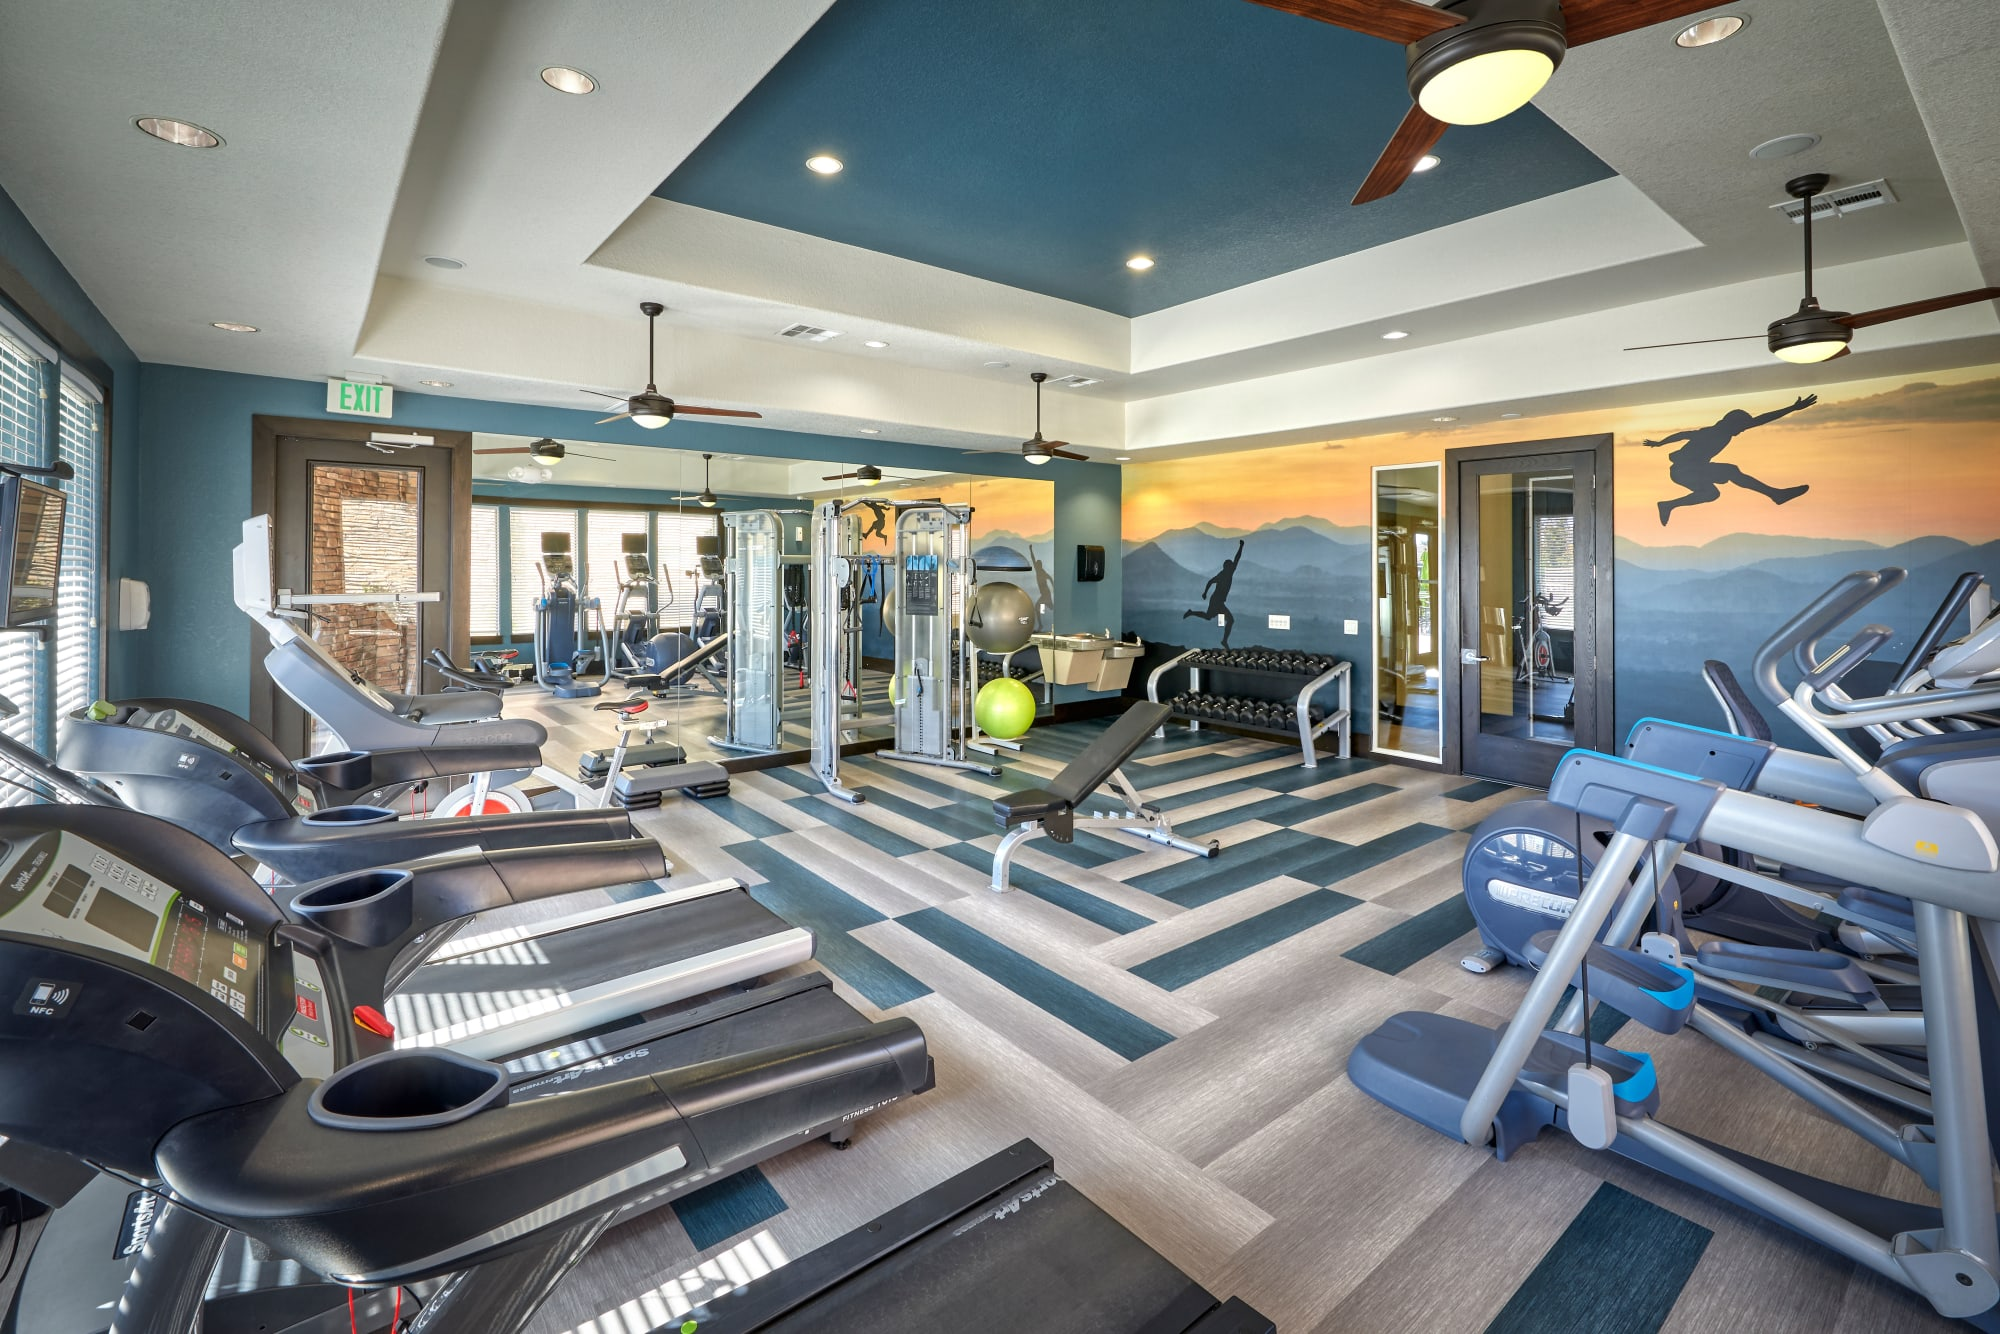 The comprehensive fitness center at M2 Apartments in Denver, Colorado